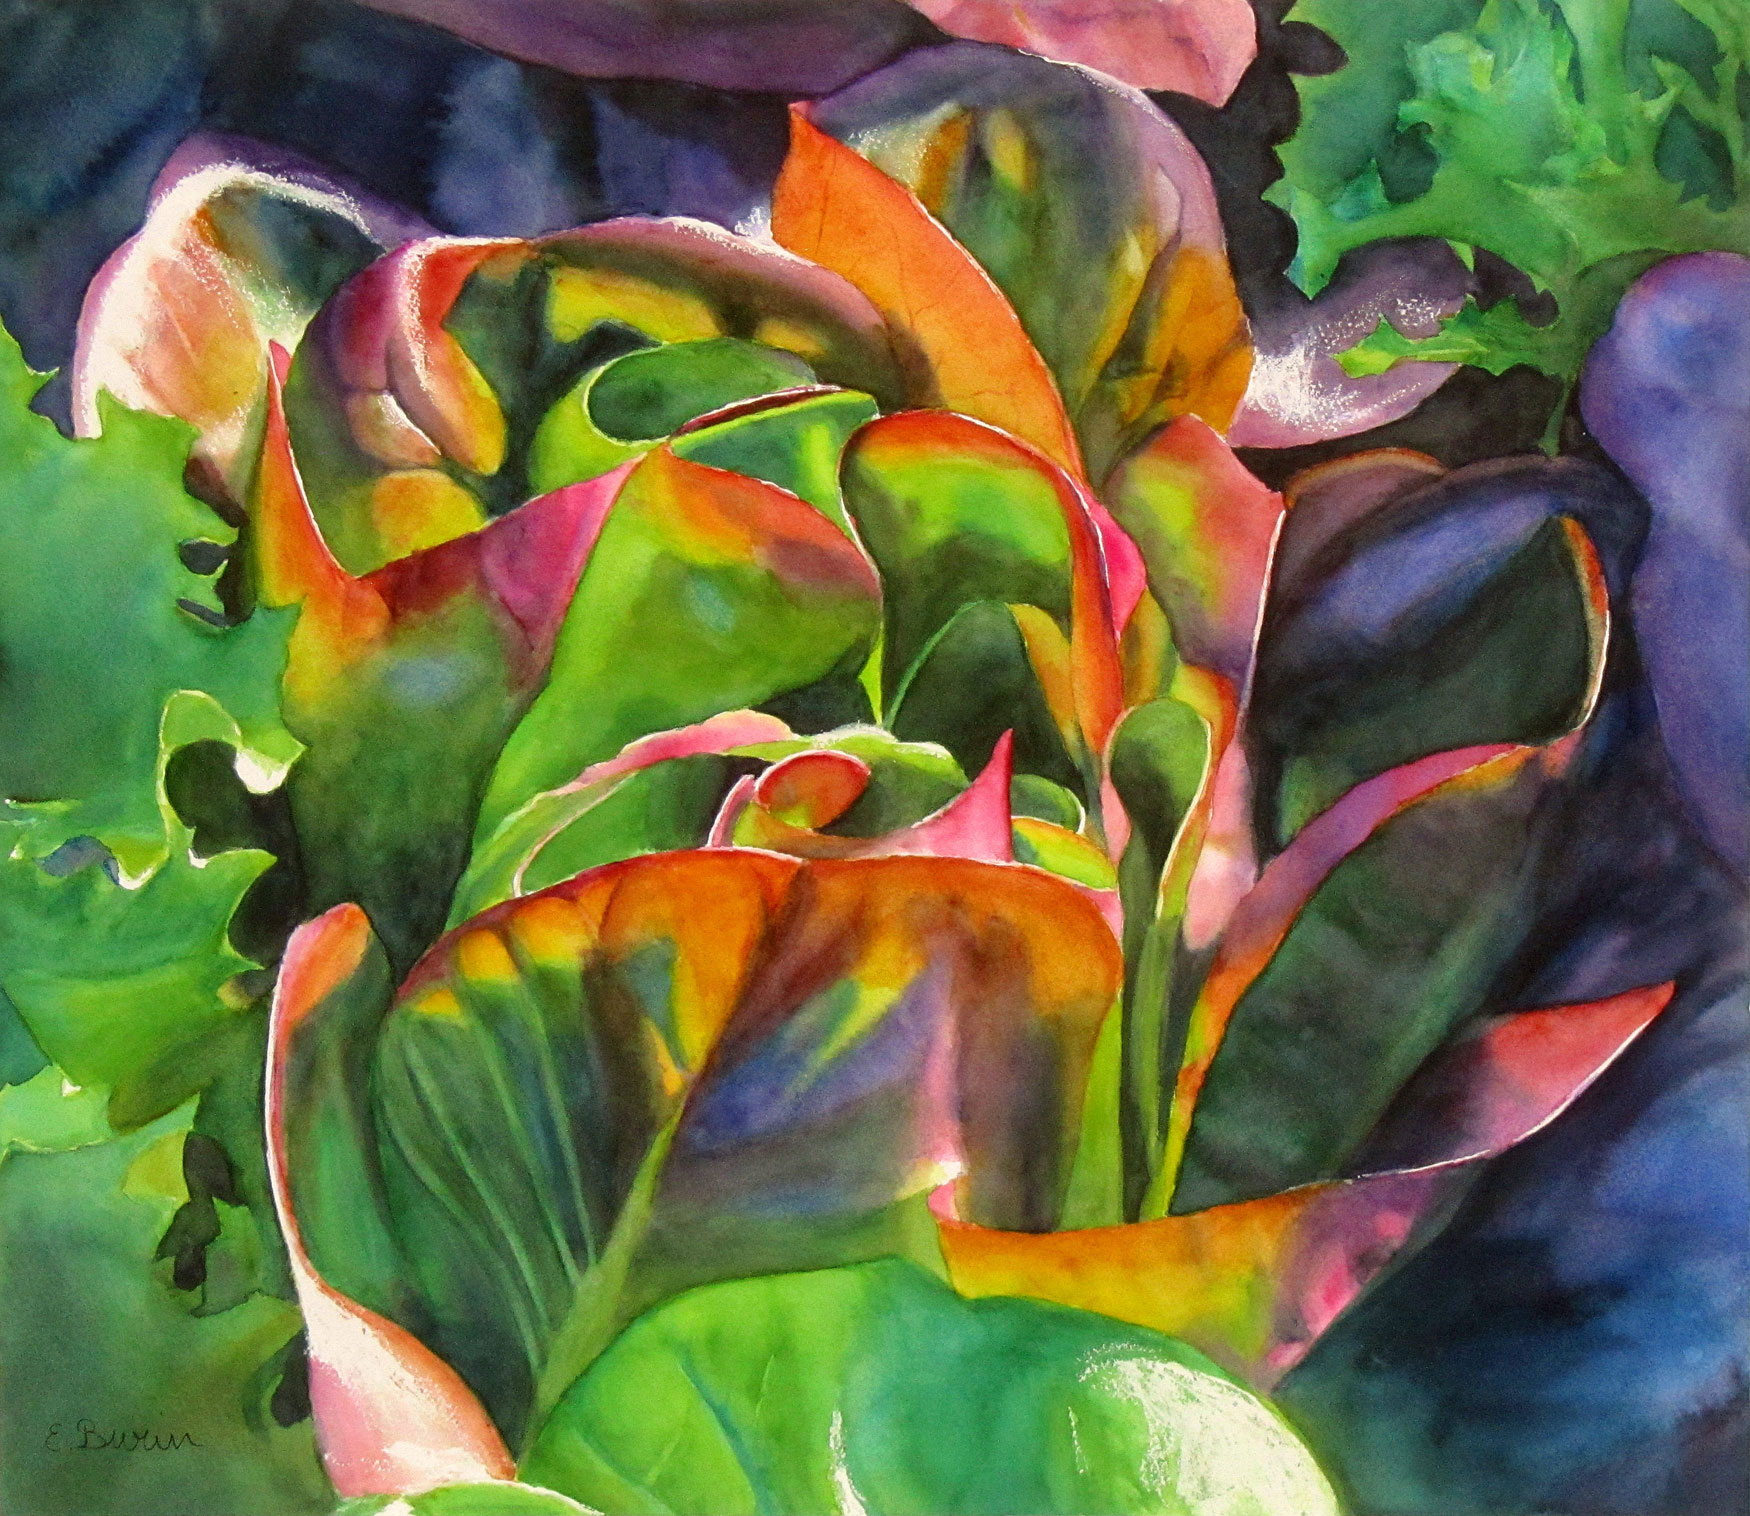 Red Lettuce, watercolor painting by Elizabeth Burin, nature, botanical, food